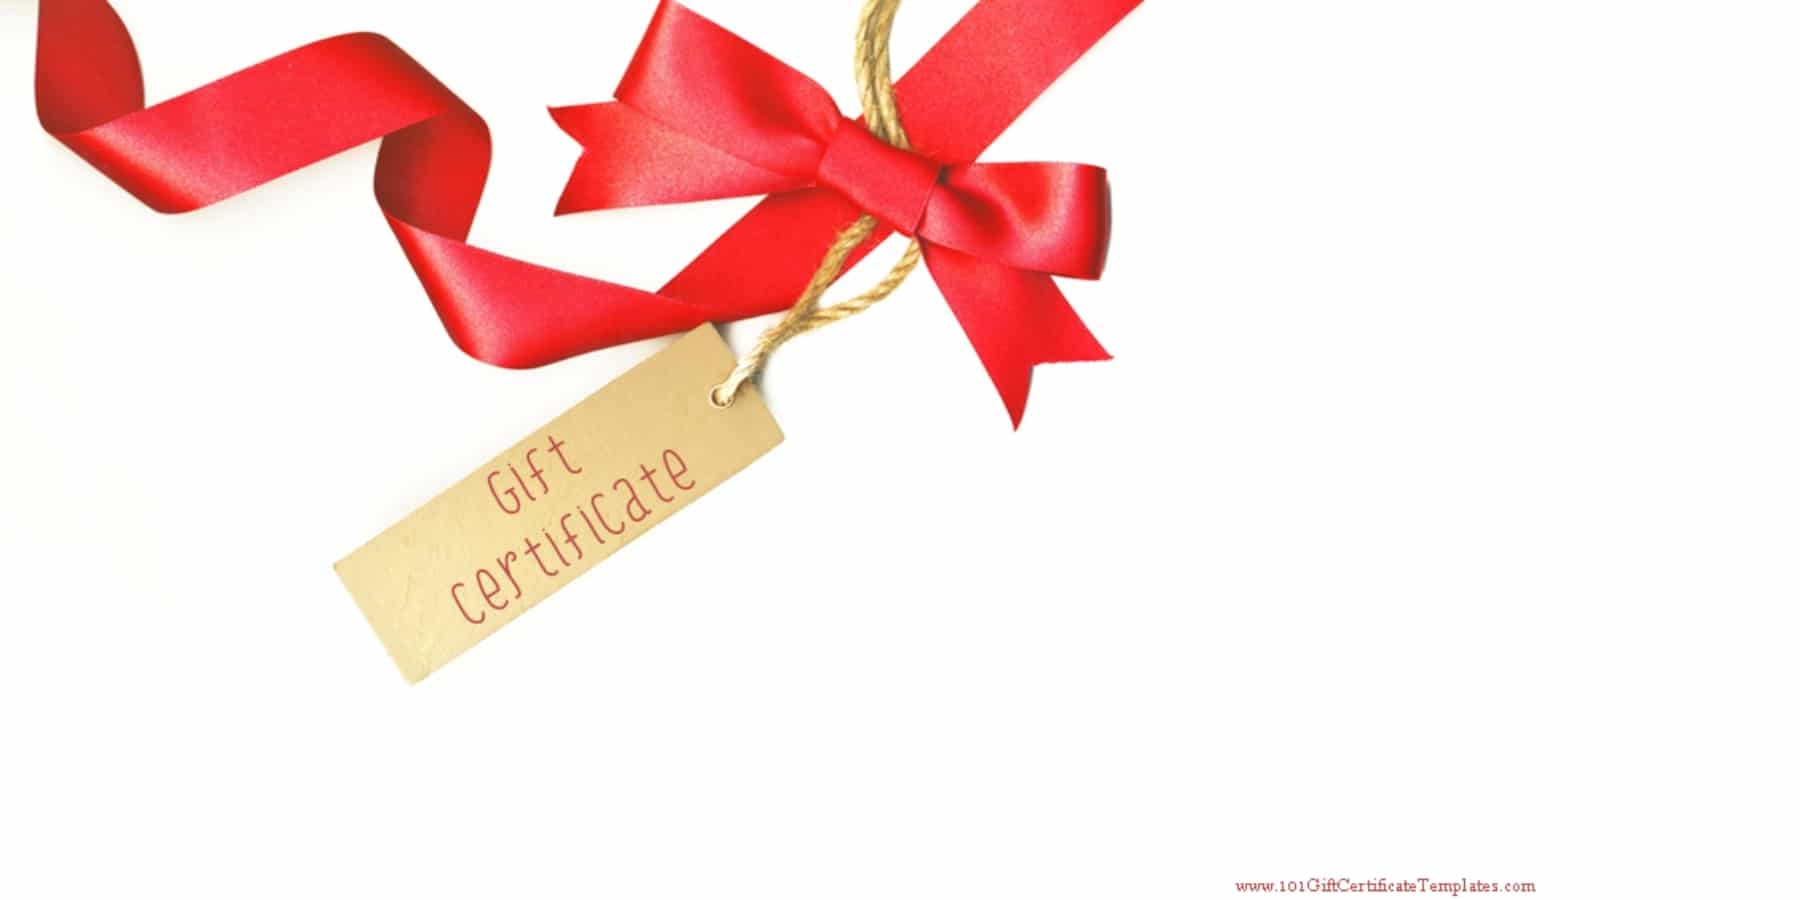 Gift Card Which Can Be Customized In Any Way With Our Gift Card Maker  Print Your Own Voucher